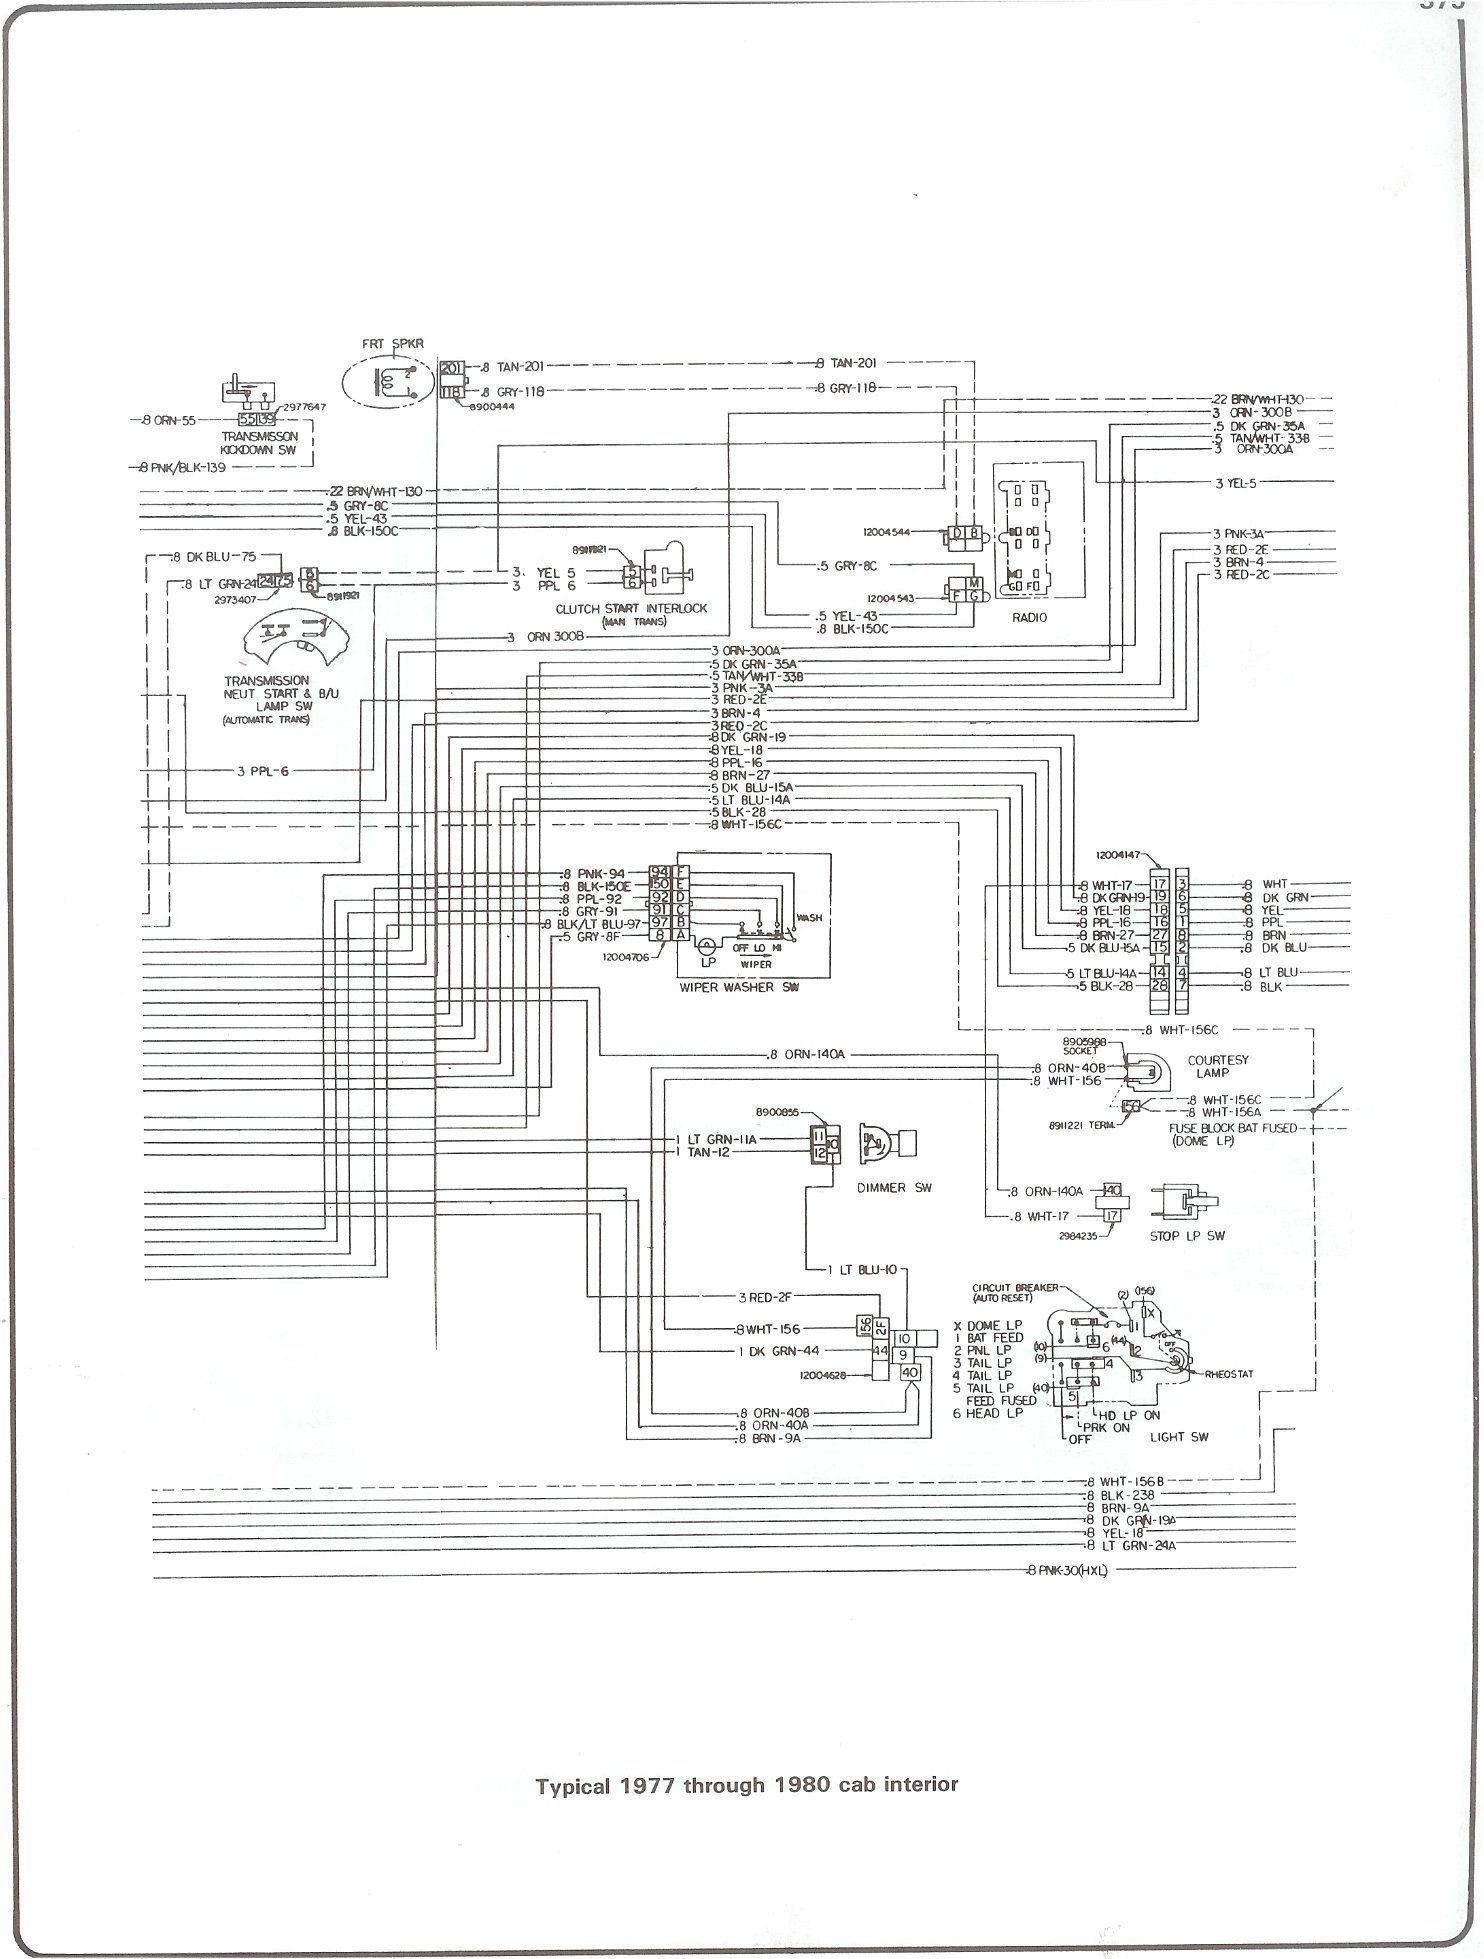 Gm Stereo Wiring Diagram 1979 C20 Basic Guide Aftermarket 16 Complete 73 87 Diagrams Rh Forum 87chevytrucks Com Radio 2004 Chevy Classic